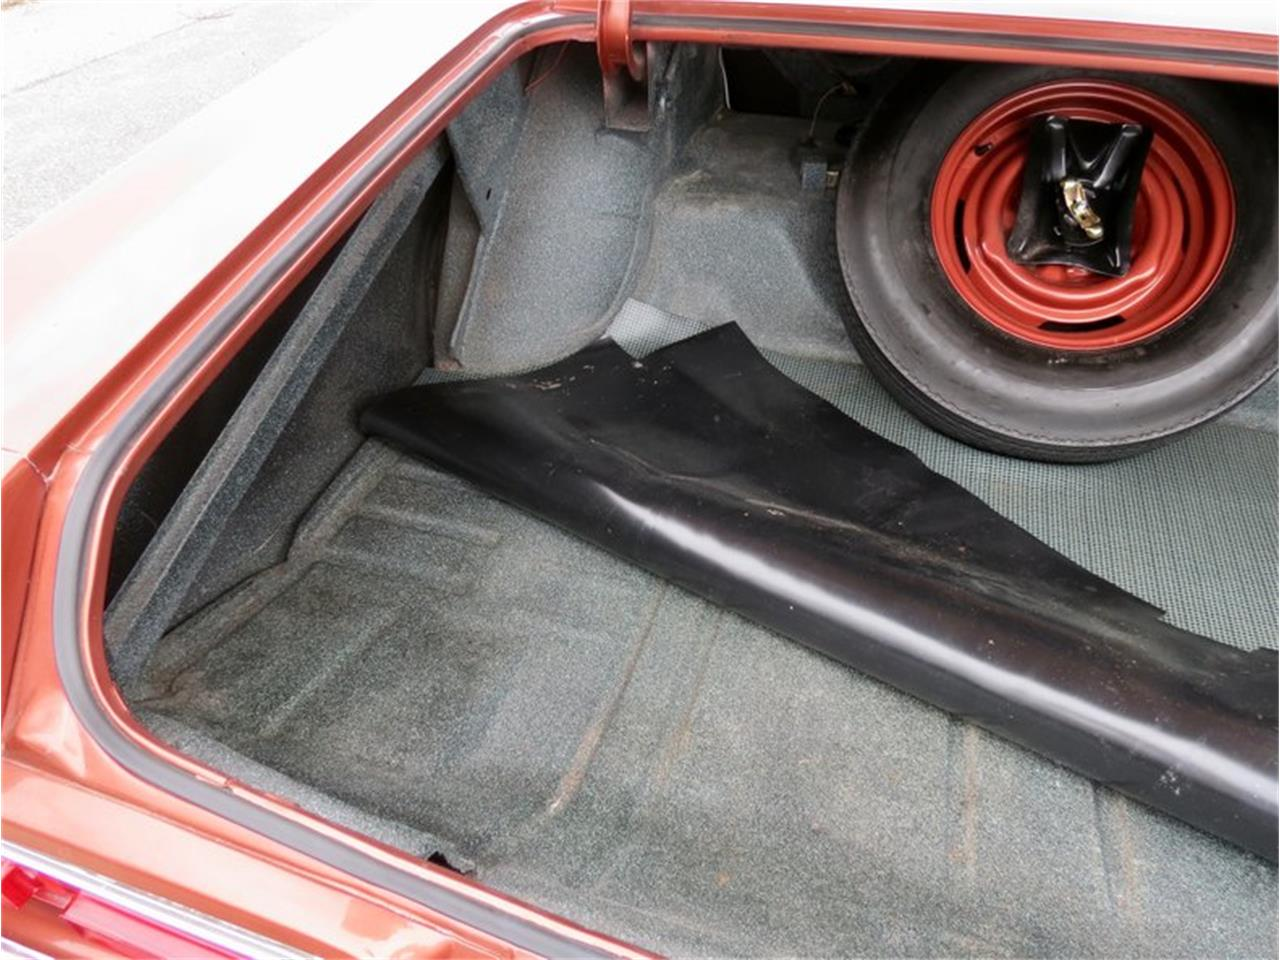 Large Picture of Classic 1966 Chevrolet Biscayne located in Dayton Ohio - $34,000.00 Offered by Classic Car Connection - PWJK